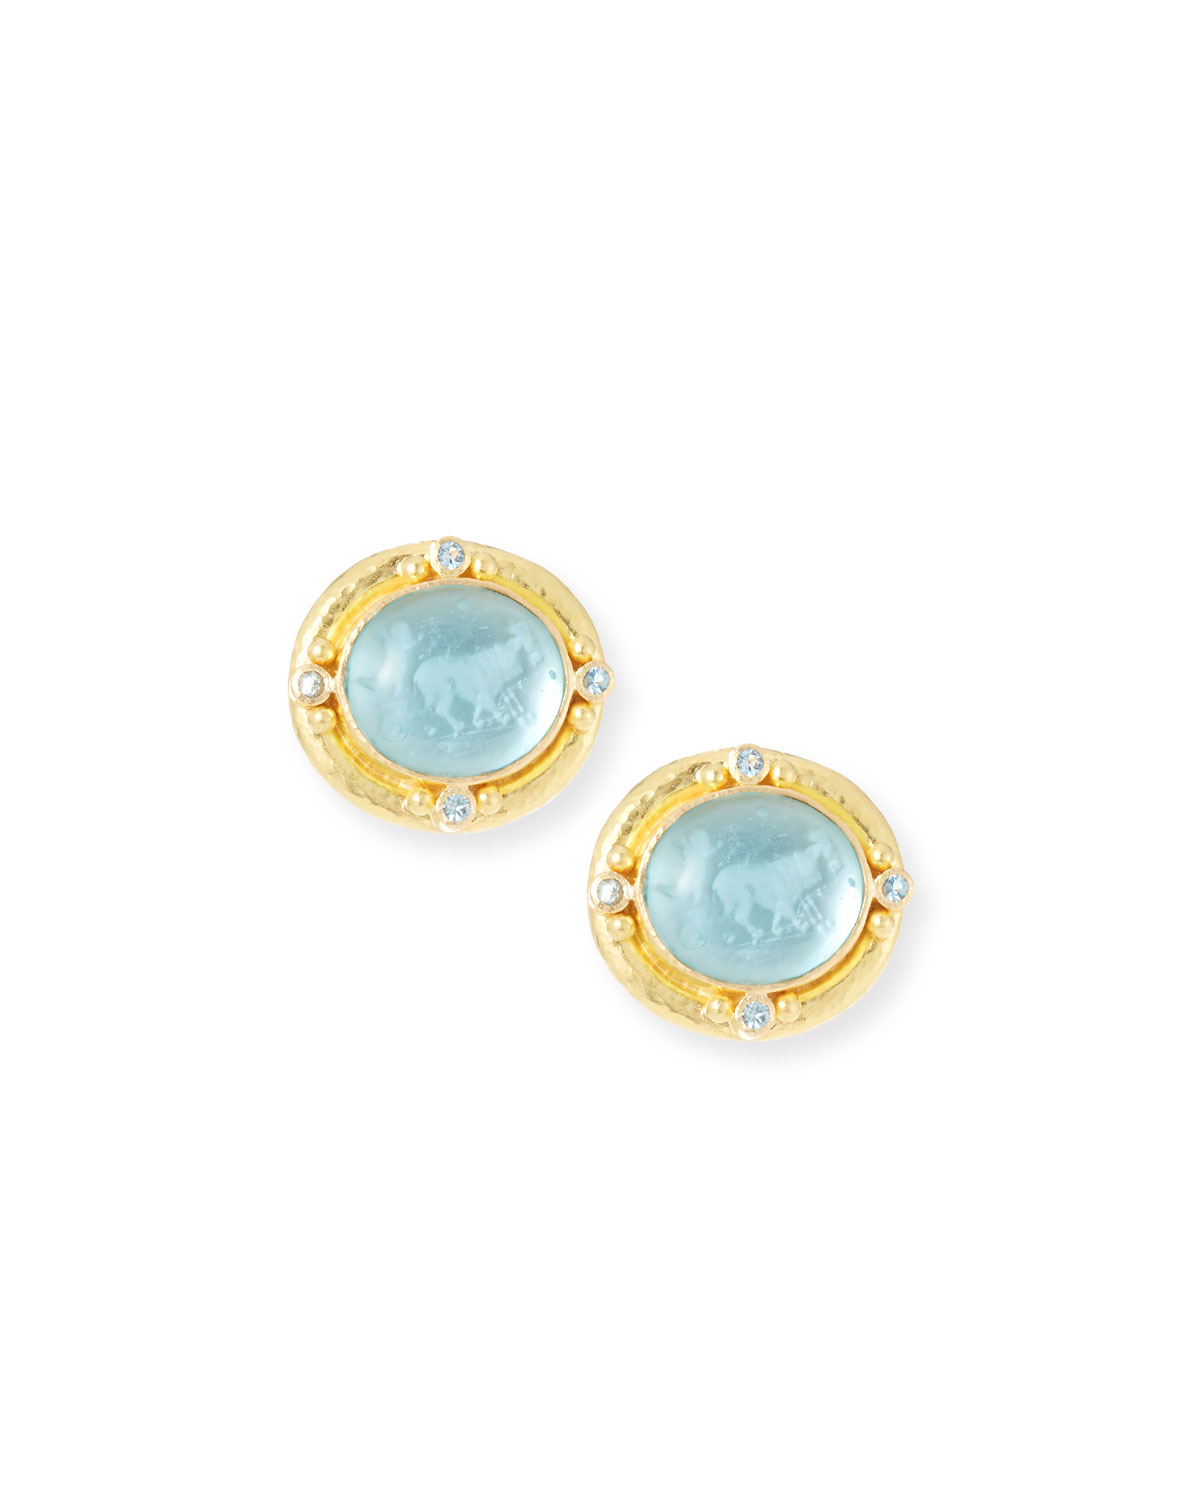 ELIZABETH LOCKE 19K GOLD GOAT, LION & PUTTO INTAGLIO STUD EARRINGS